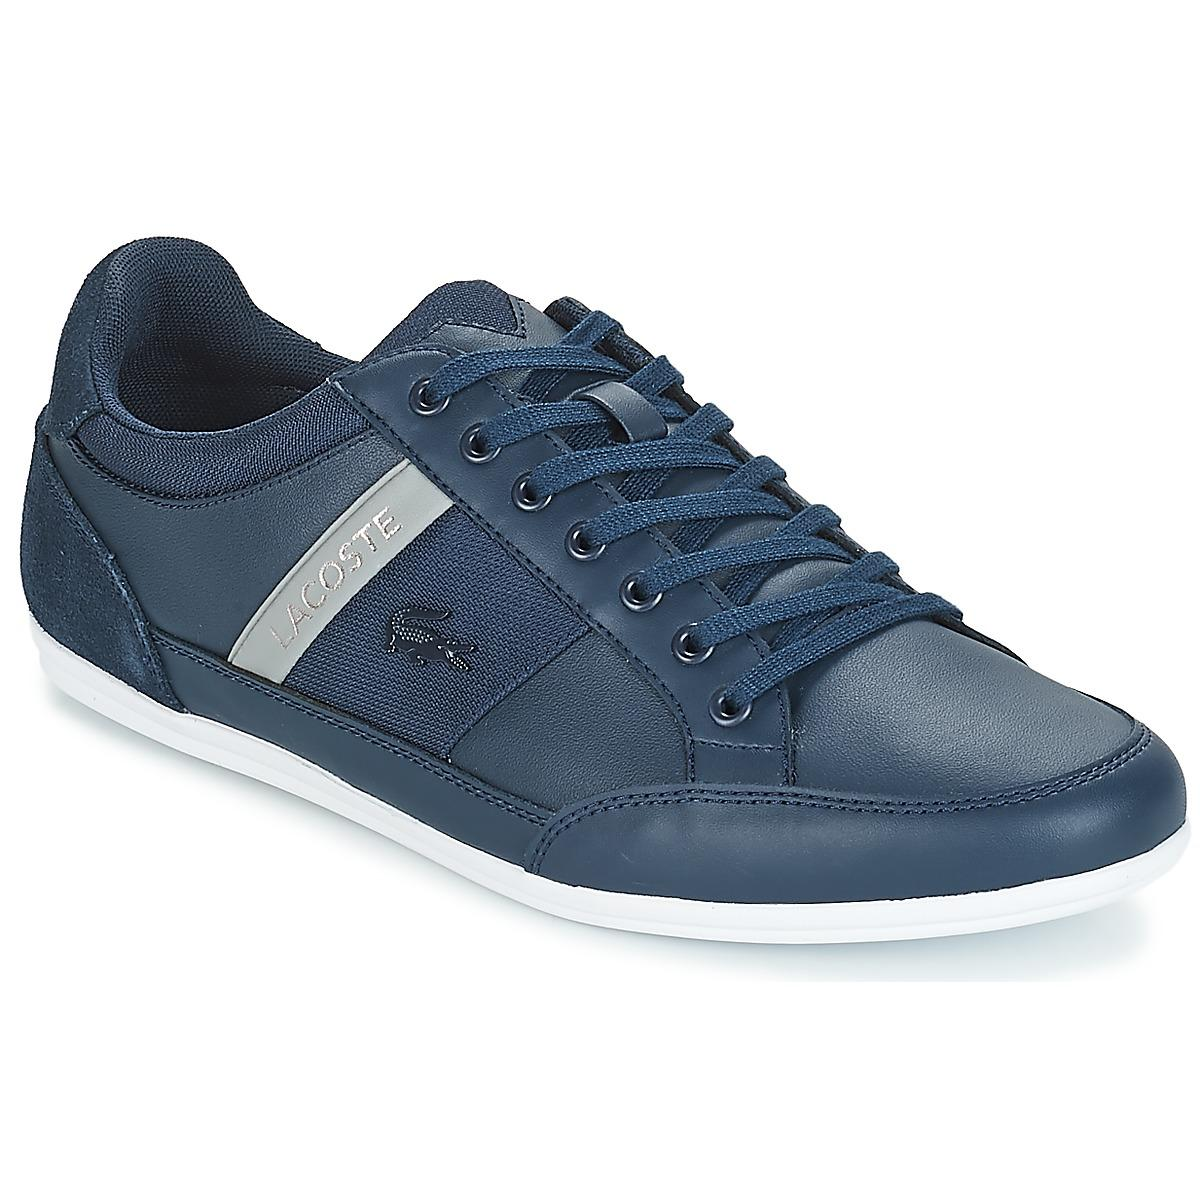 ebe30490f Lacoste - Blue Chaymon 318 3 Us Shoes (trainers) for Men - Lyst. View  fullscreen